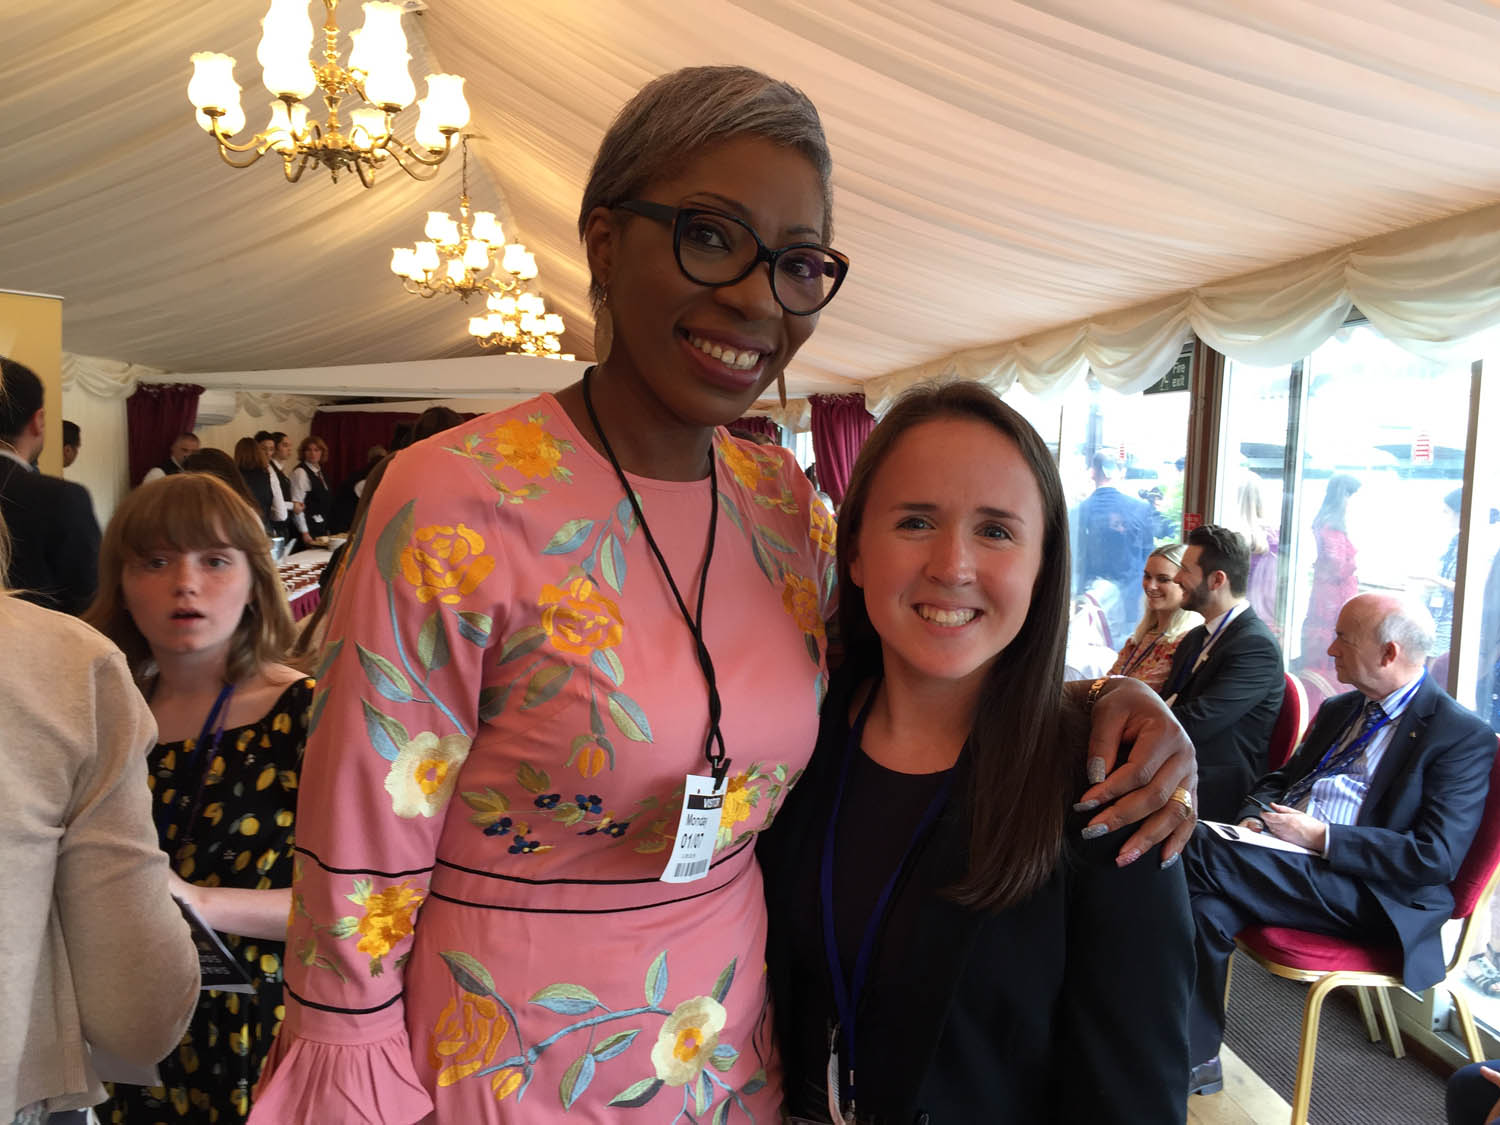 Libby was able to meet and chat with Tessy Ojo, CEO of The Diana Award